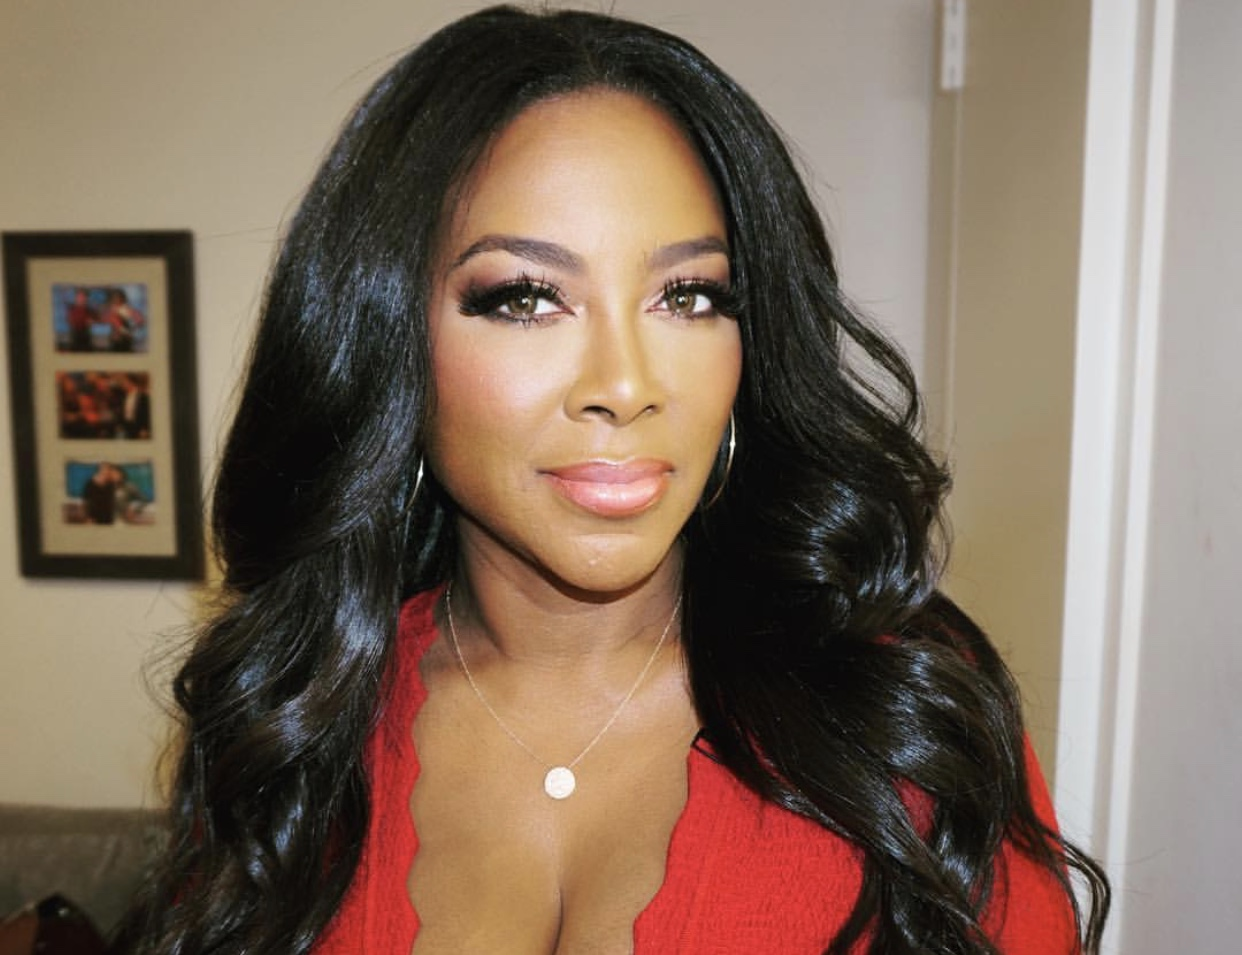 Kenya Moore's Latest Pics With Baby Brooklyn Has Fans In Awe